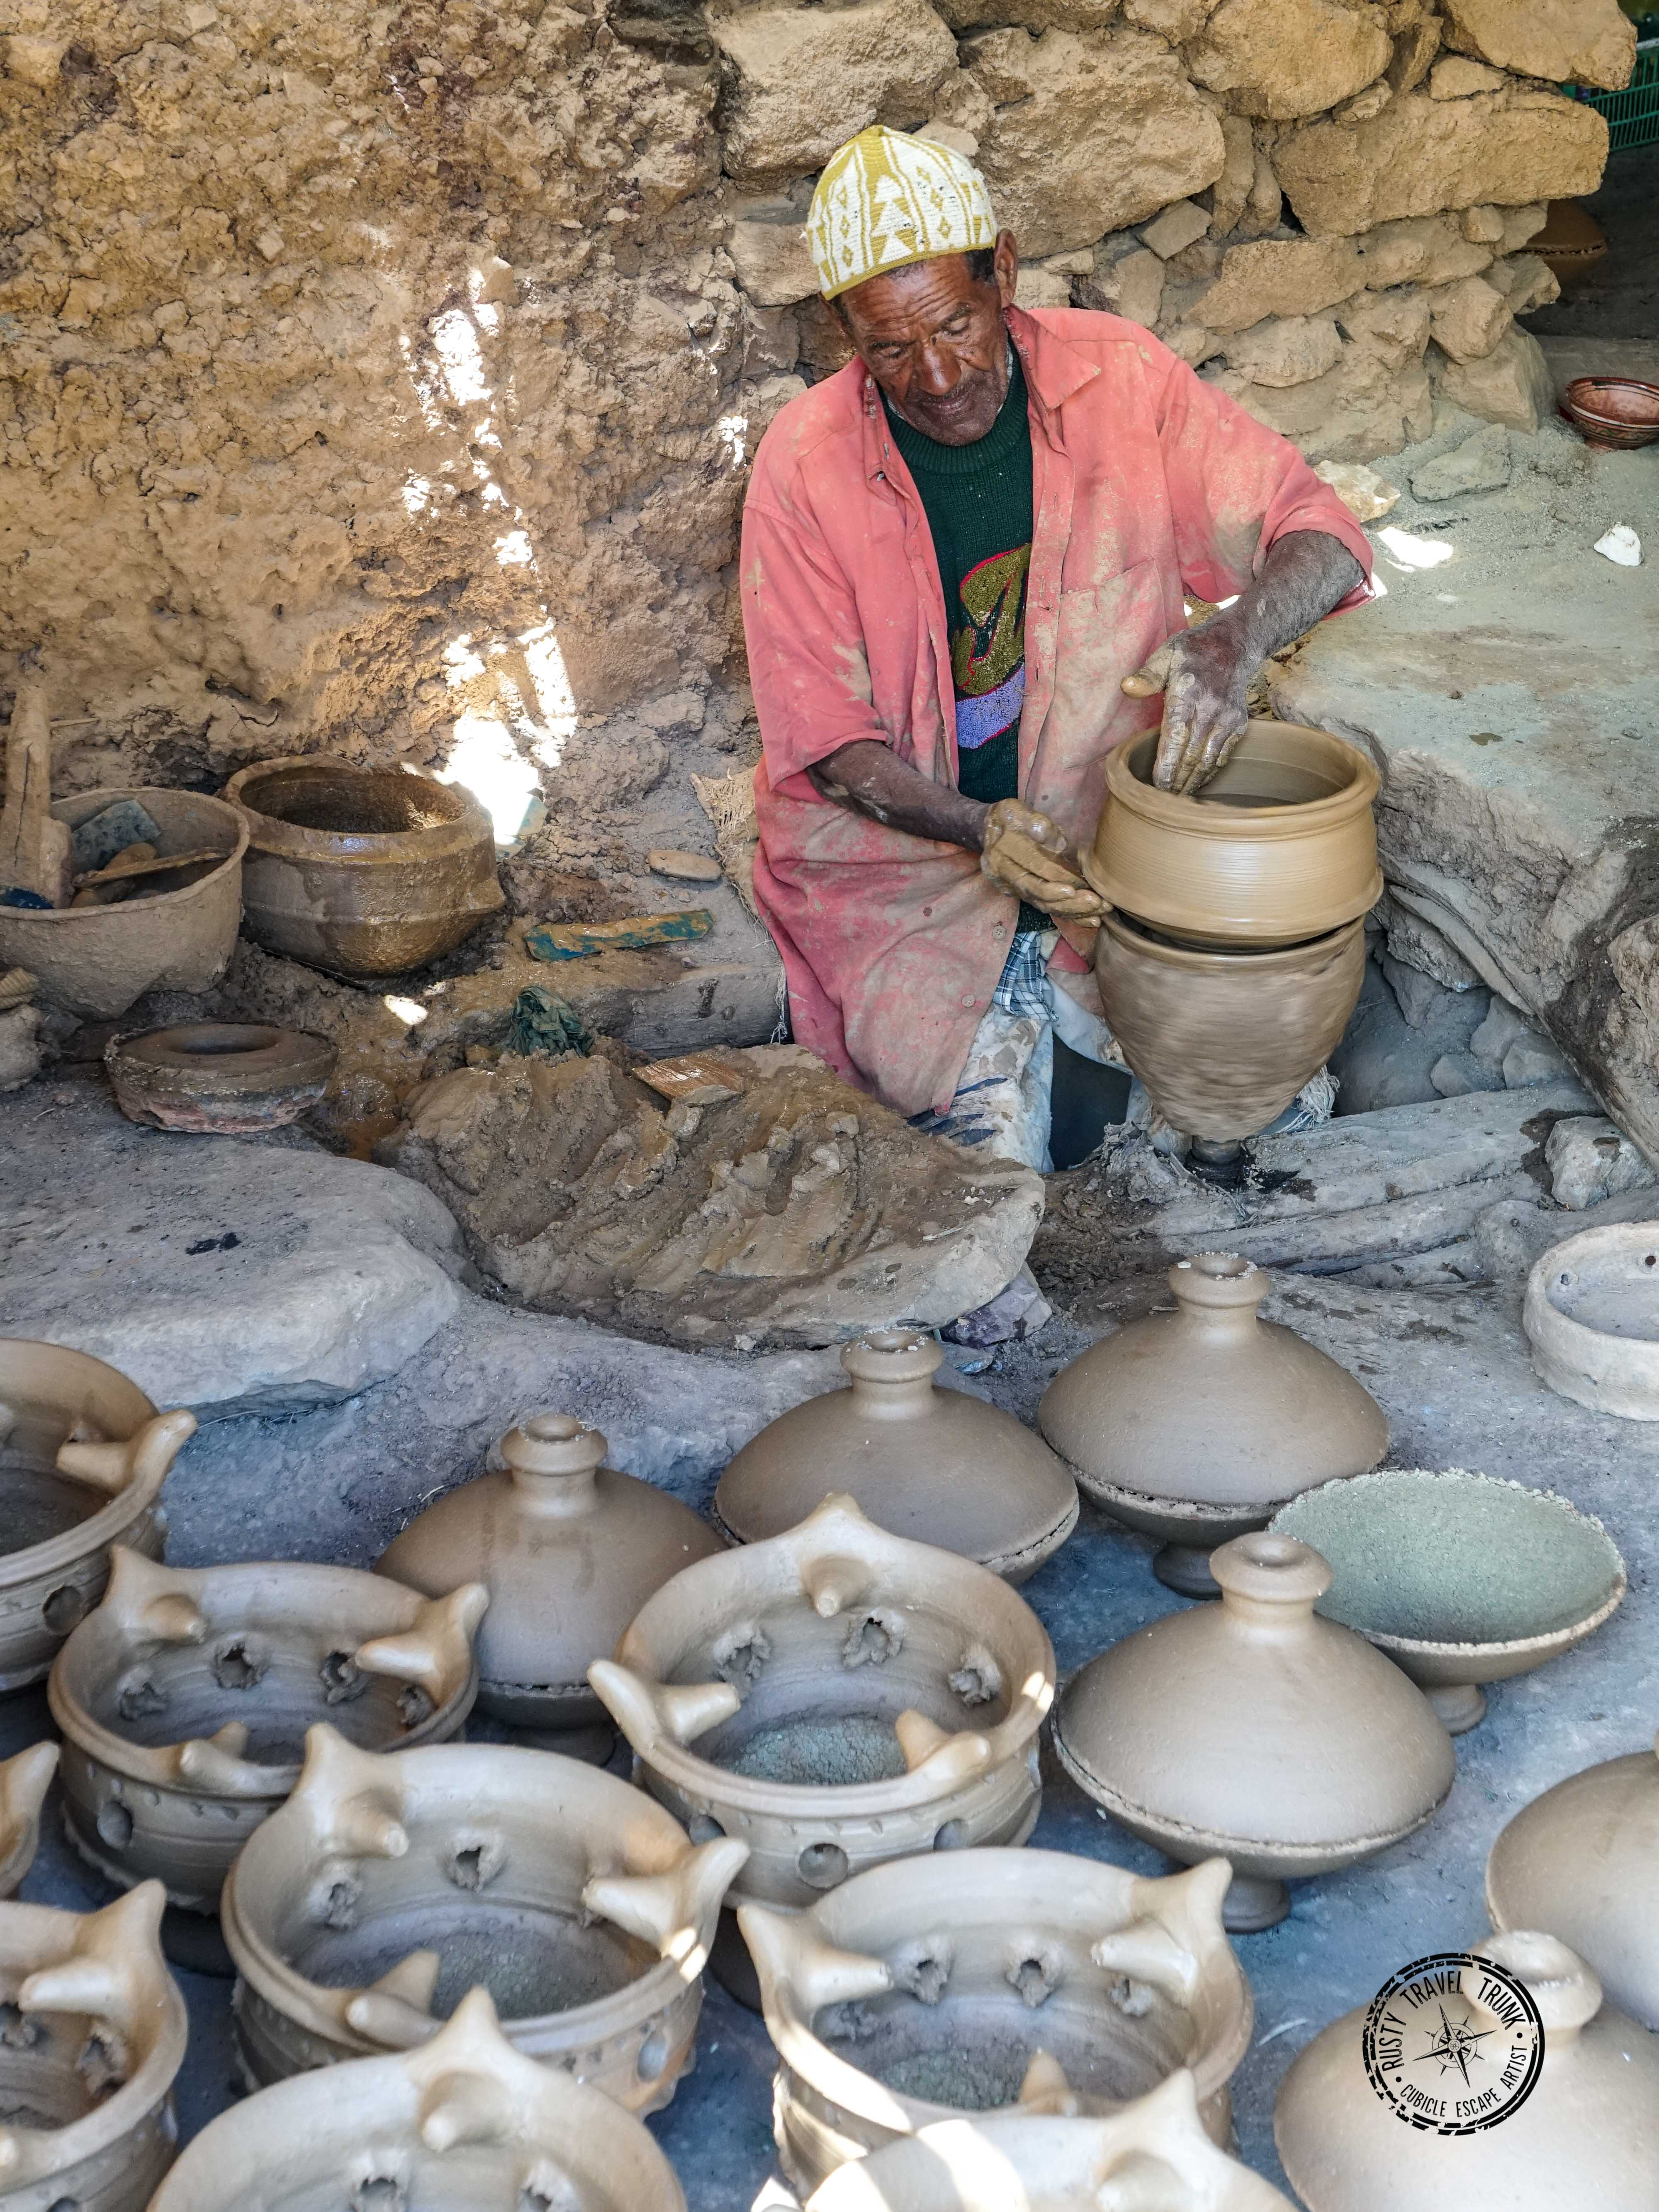 Pottery making in Infgane